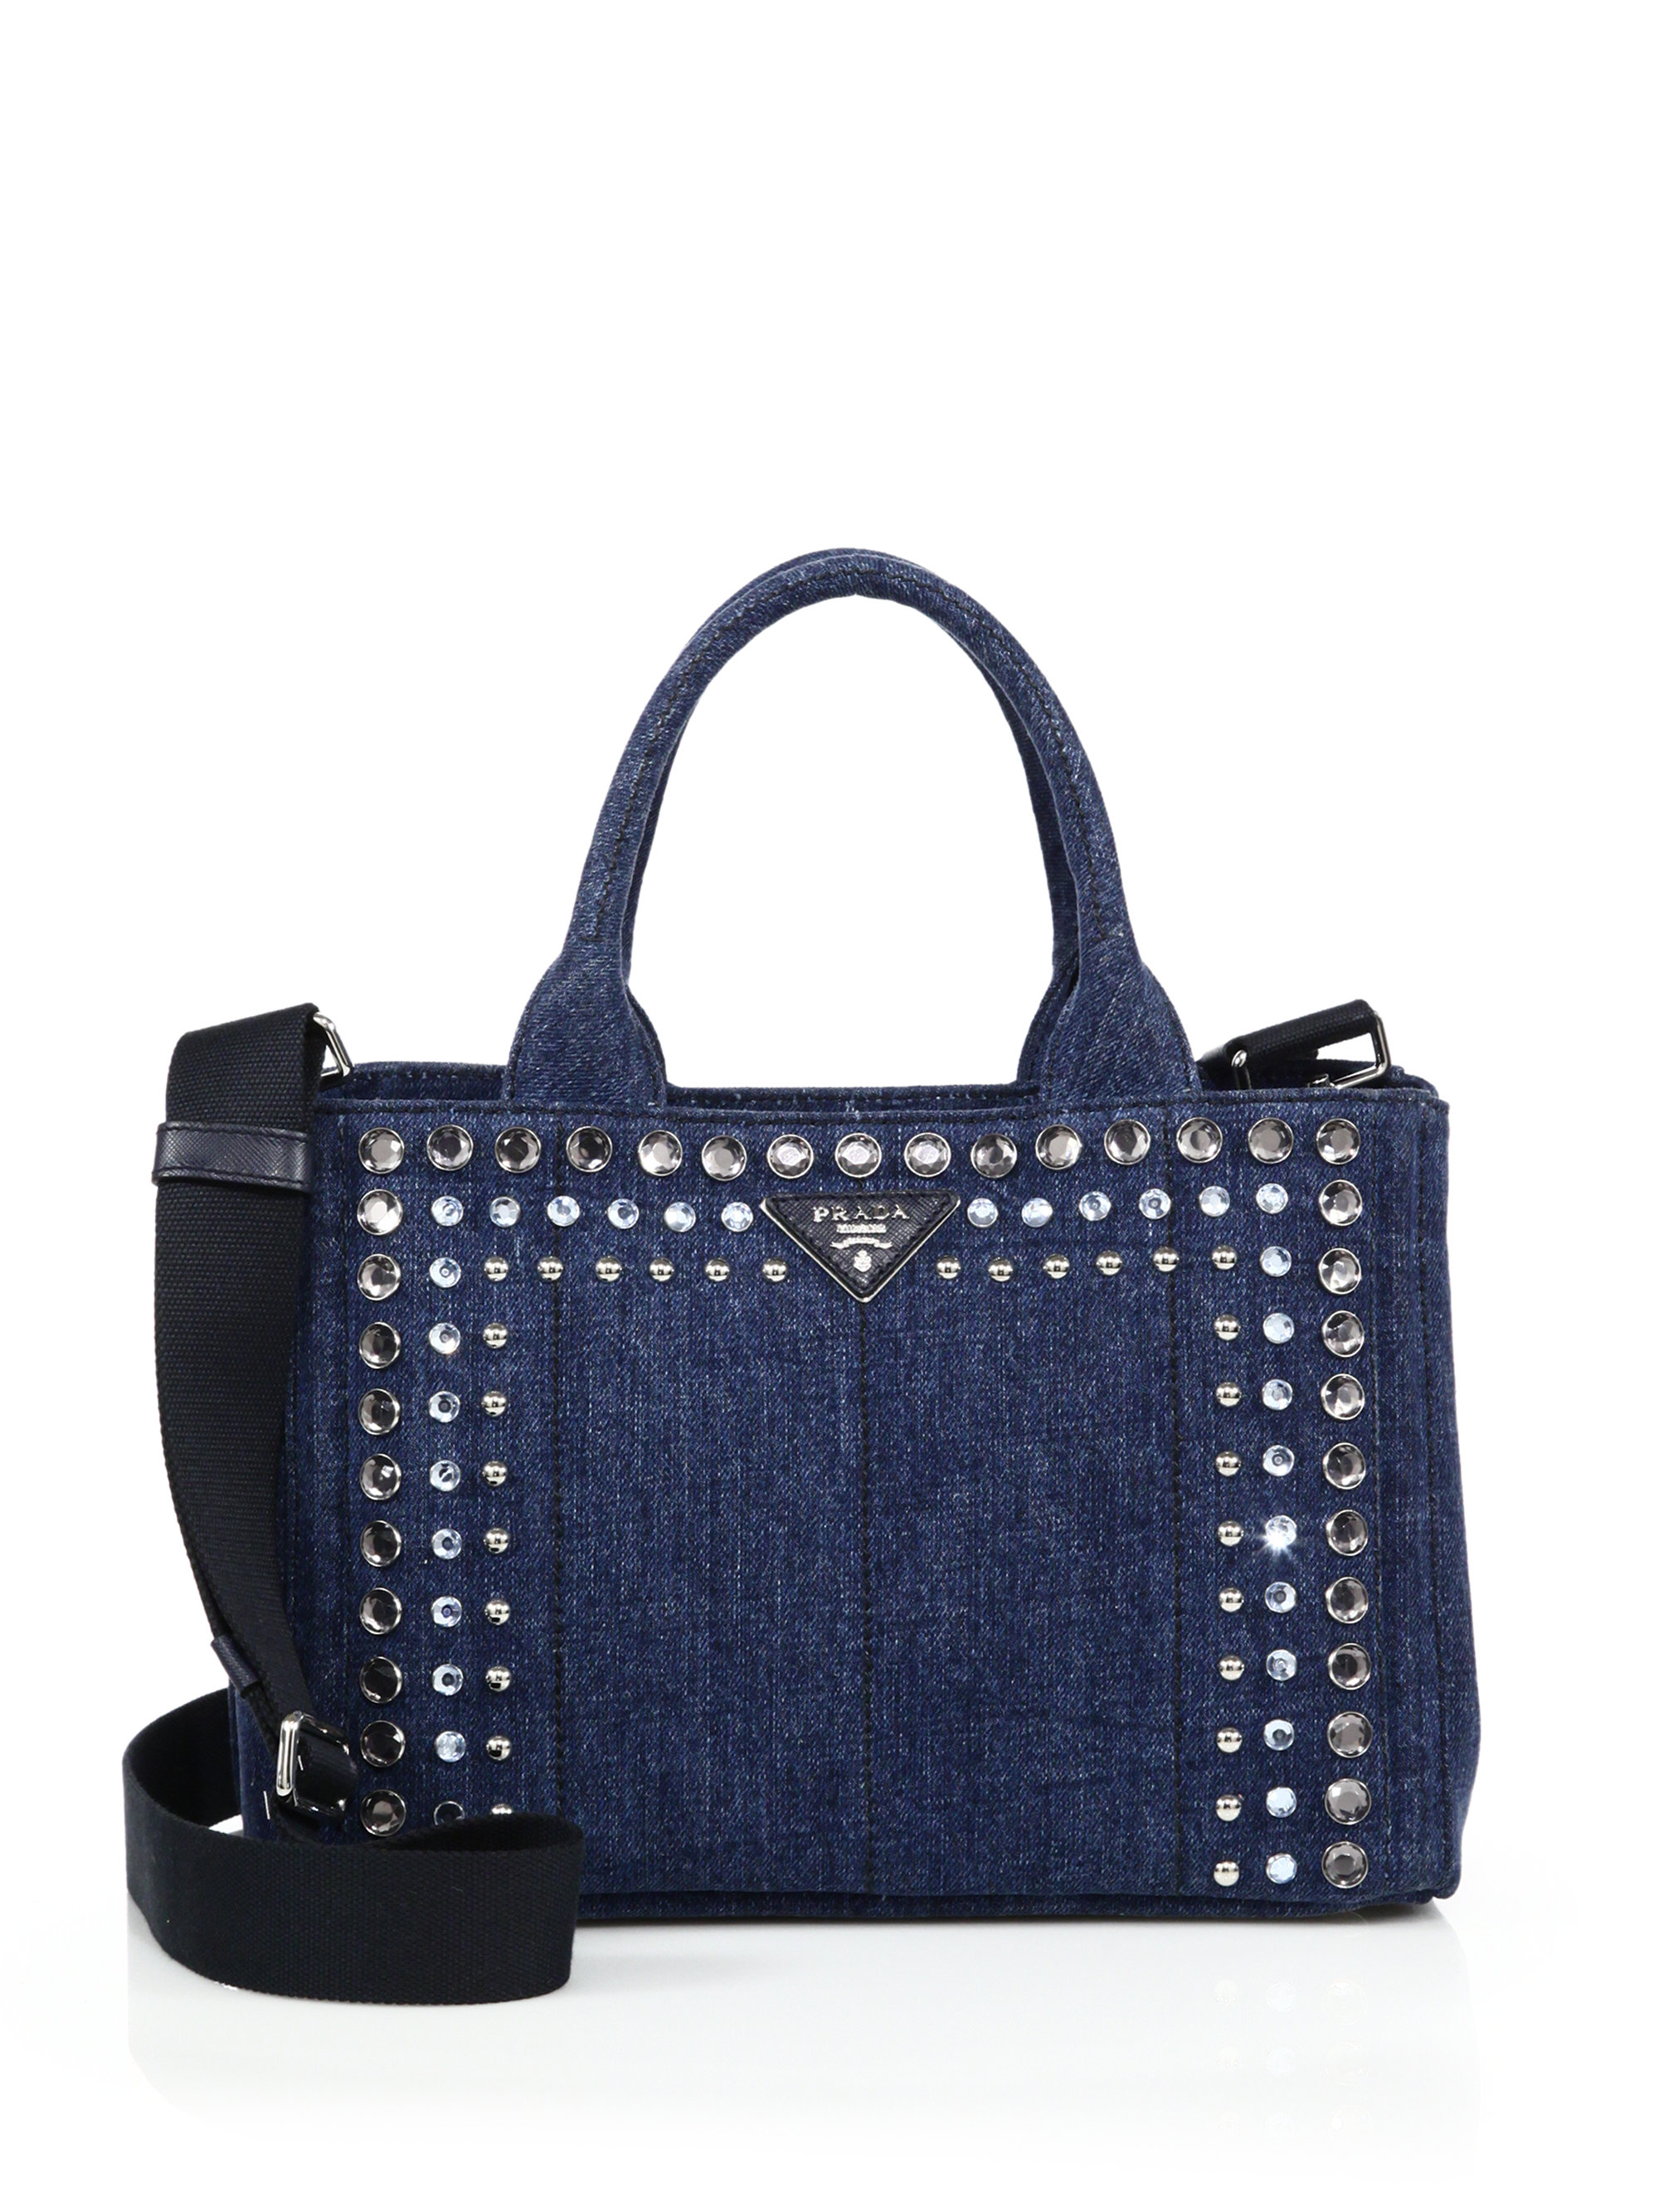 ceebde6dee7d ... clearance lyst prada crystal embellished denim tote in blue 05598 28315